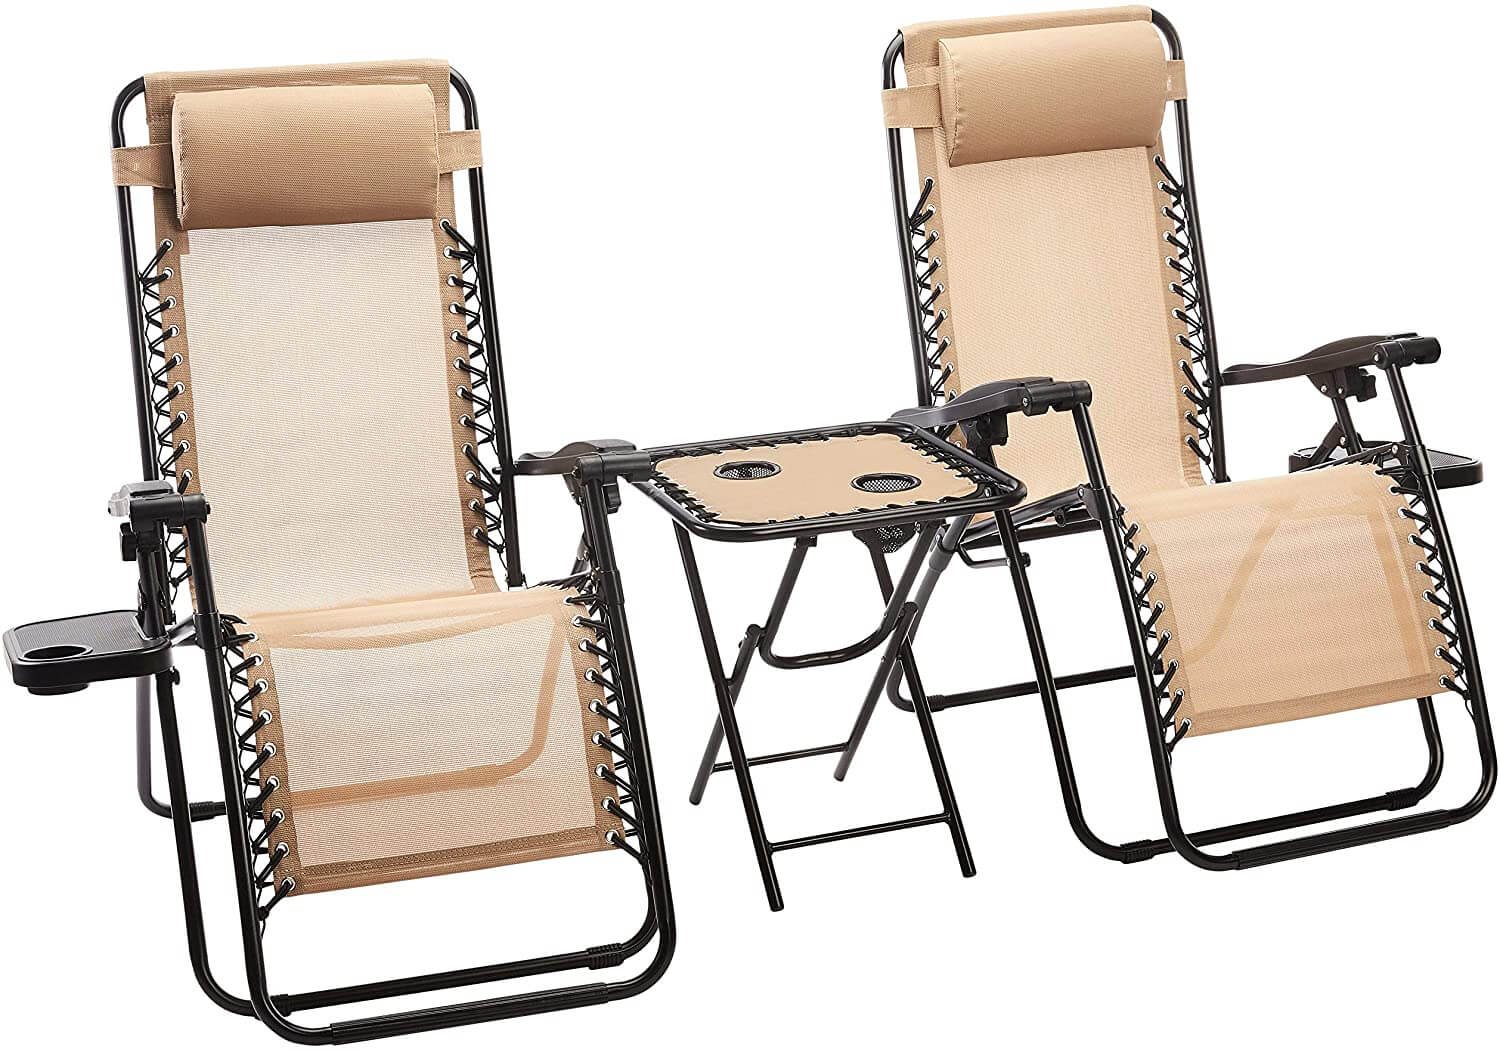 SIDE PATIO TABLE AND ZERO GRAVITY CHAIRS DESIGN IDEAS